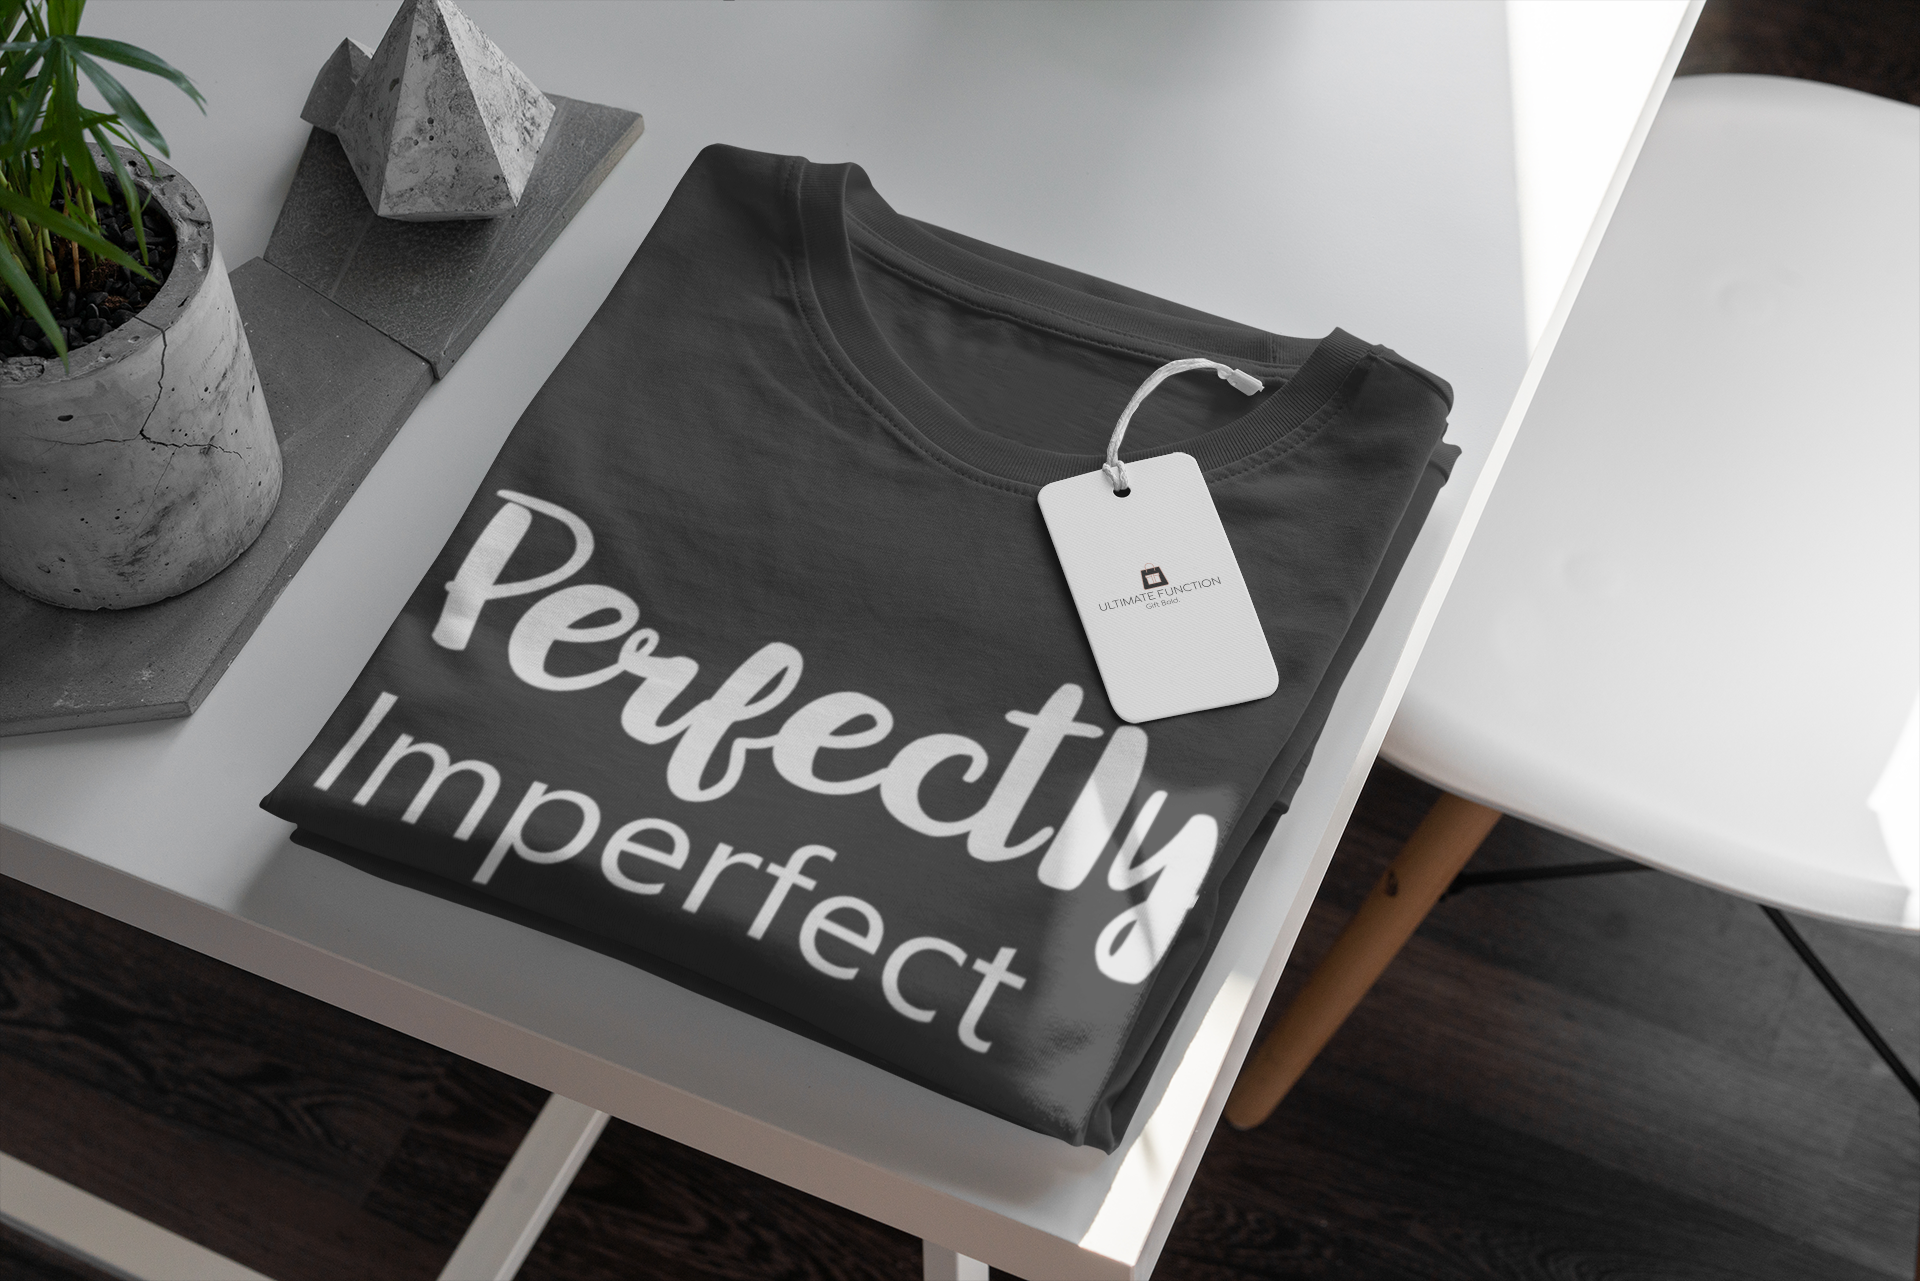 mockup-of-a-t-shirt-with-a-clothing-tag-attached-displayed-on-a-minimalistic-table-379-el